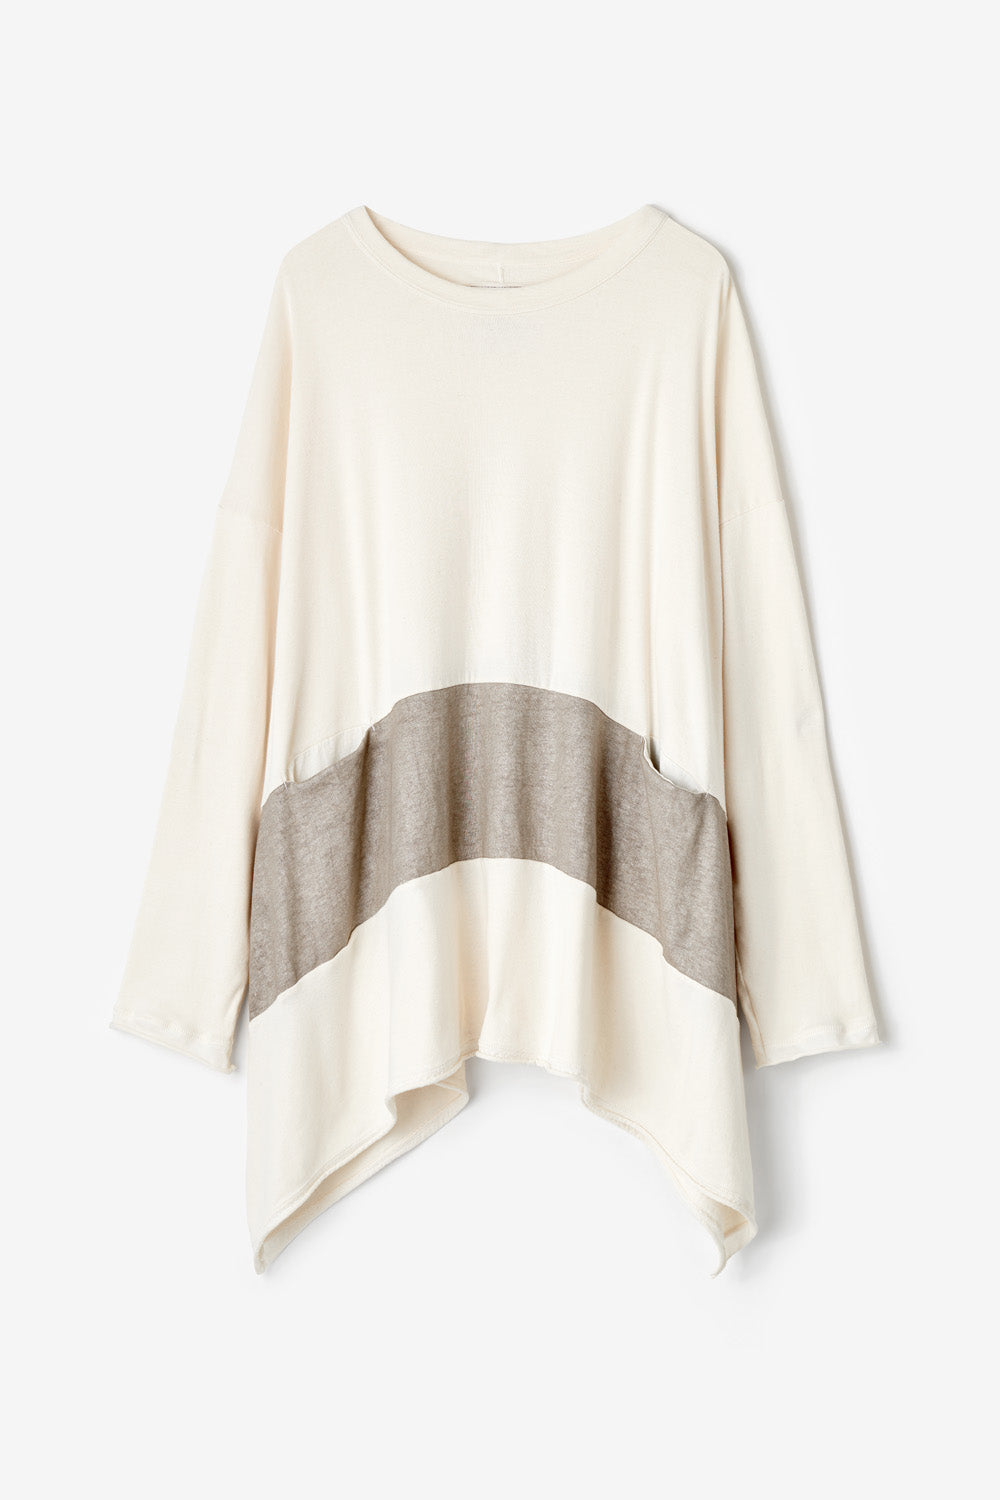 Alabama Chanin Natalie's Pullover Oversized Organic Cotton Pull On Top with Hand-Painted Stripe and Pockets